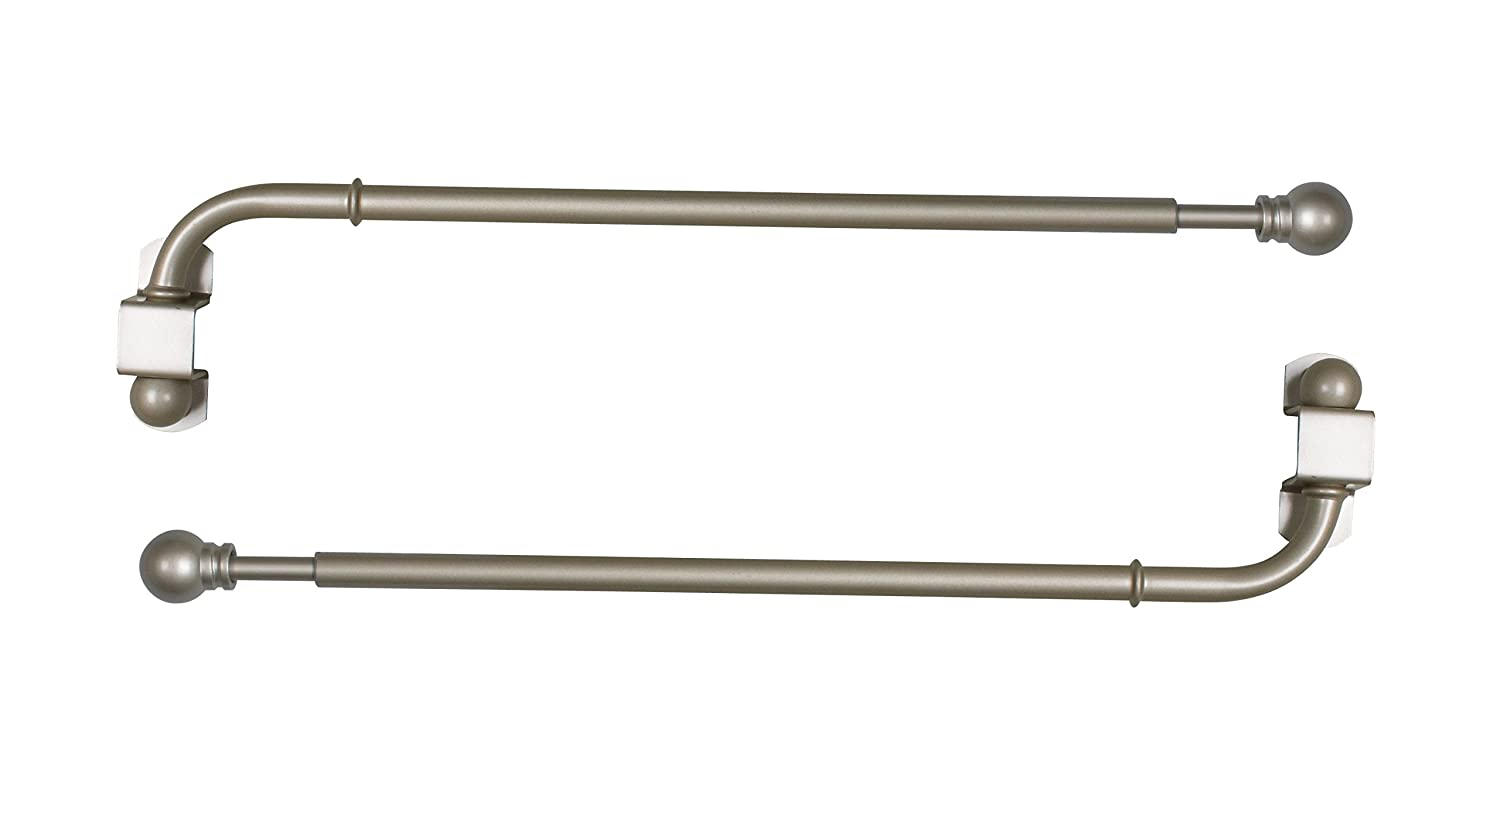 Versailles Home Fashions Pair of Swing Arm with Ball Finial, Pewter, 24 by 38-Inch